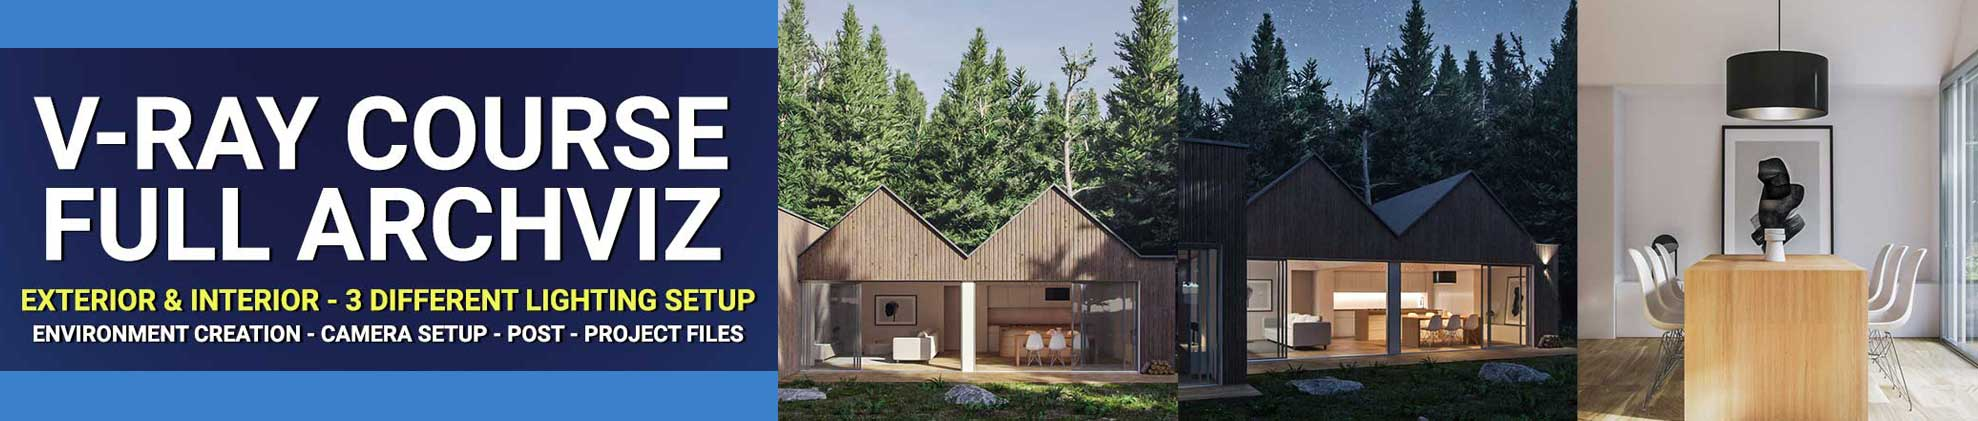 alejandro3d-vray-archviz-course-exterior-rendering-interior-forest-pack-3dsmax-banner